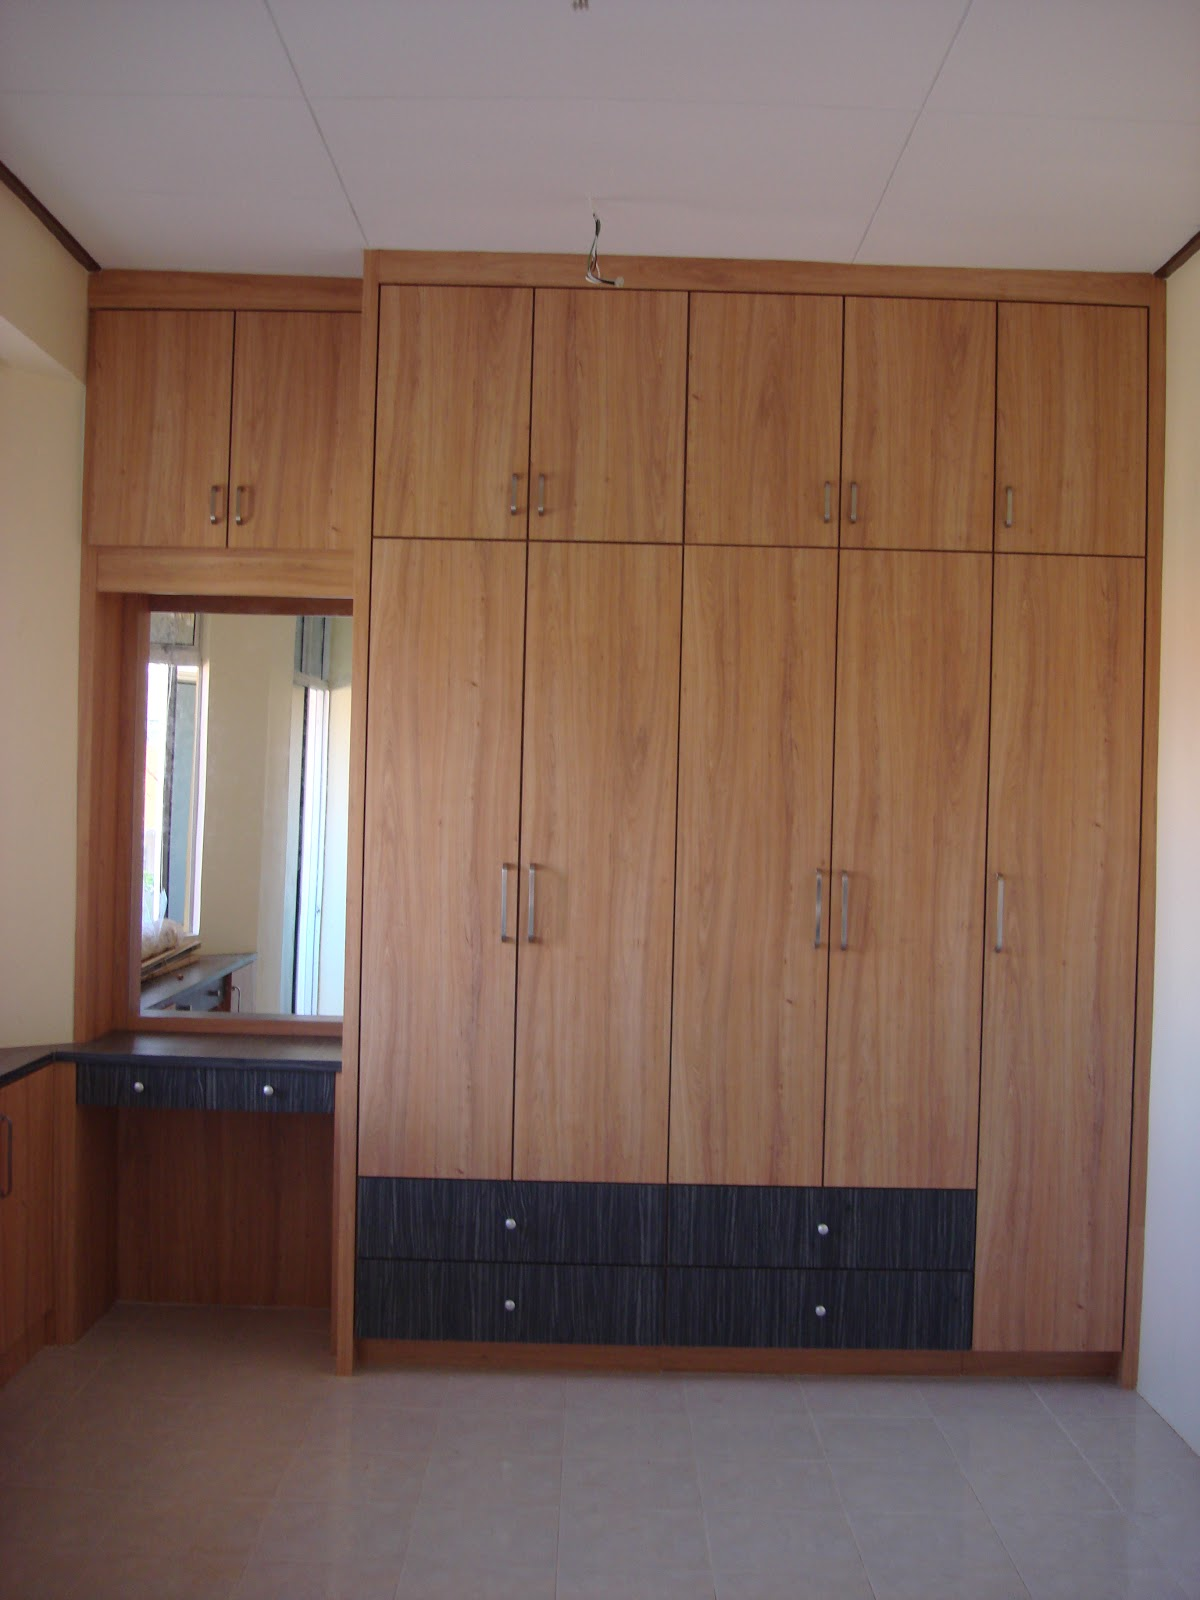 wardrobe designs with study table and dressing table interior design amp renovation kuala terengganu kitchen and 590